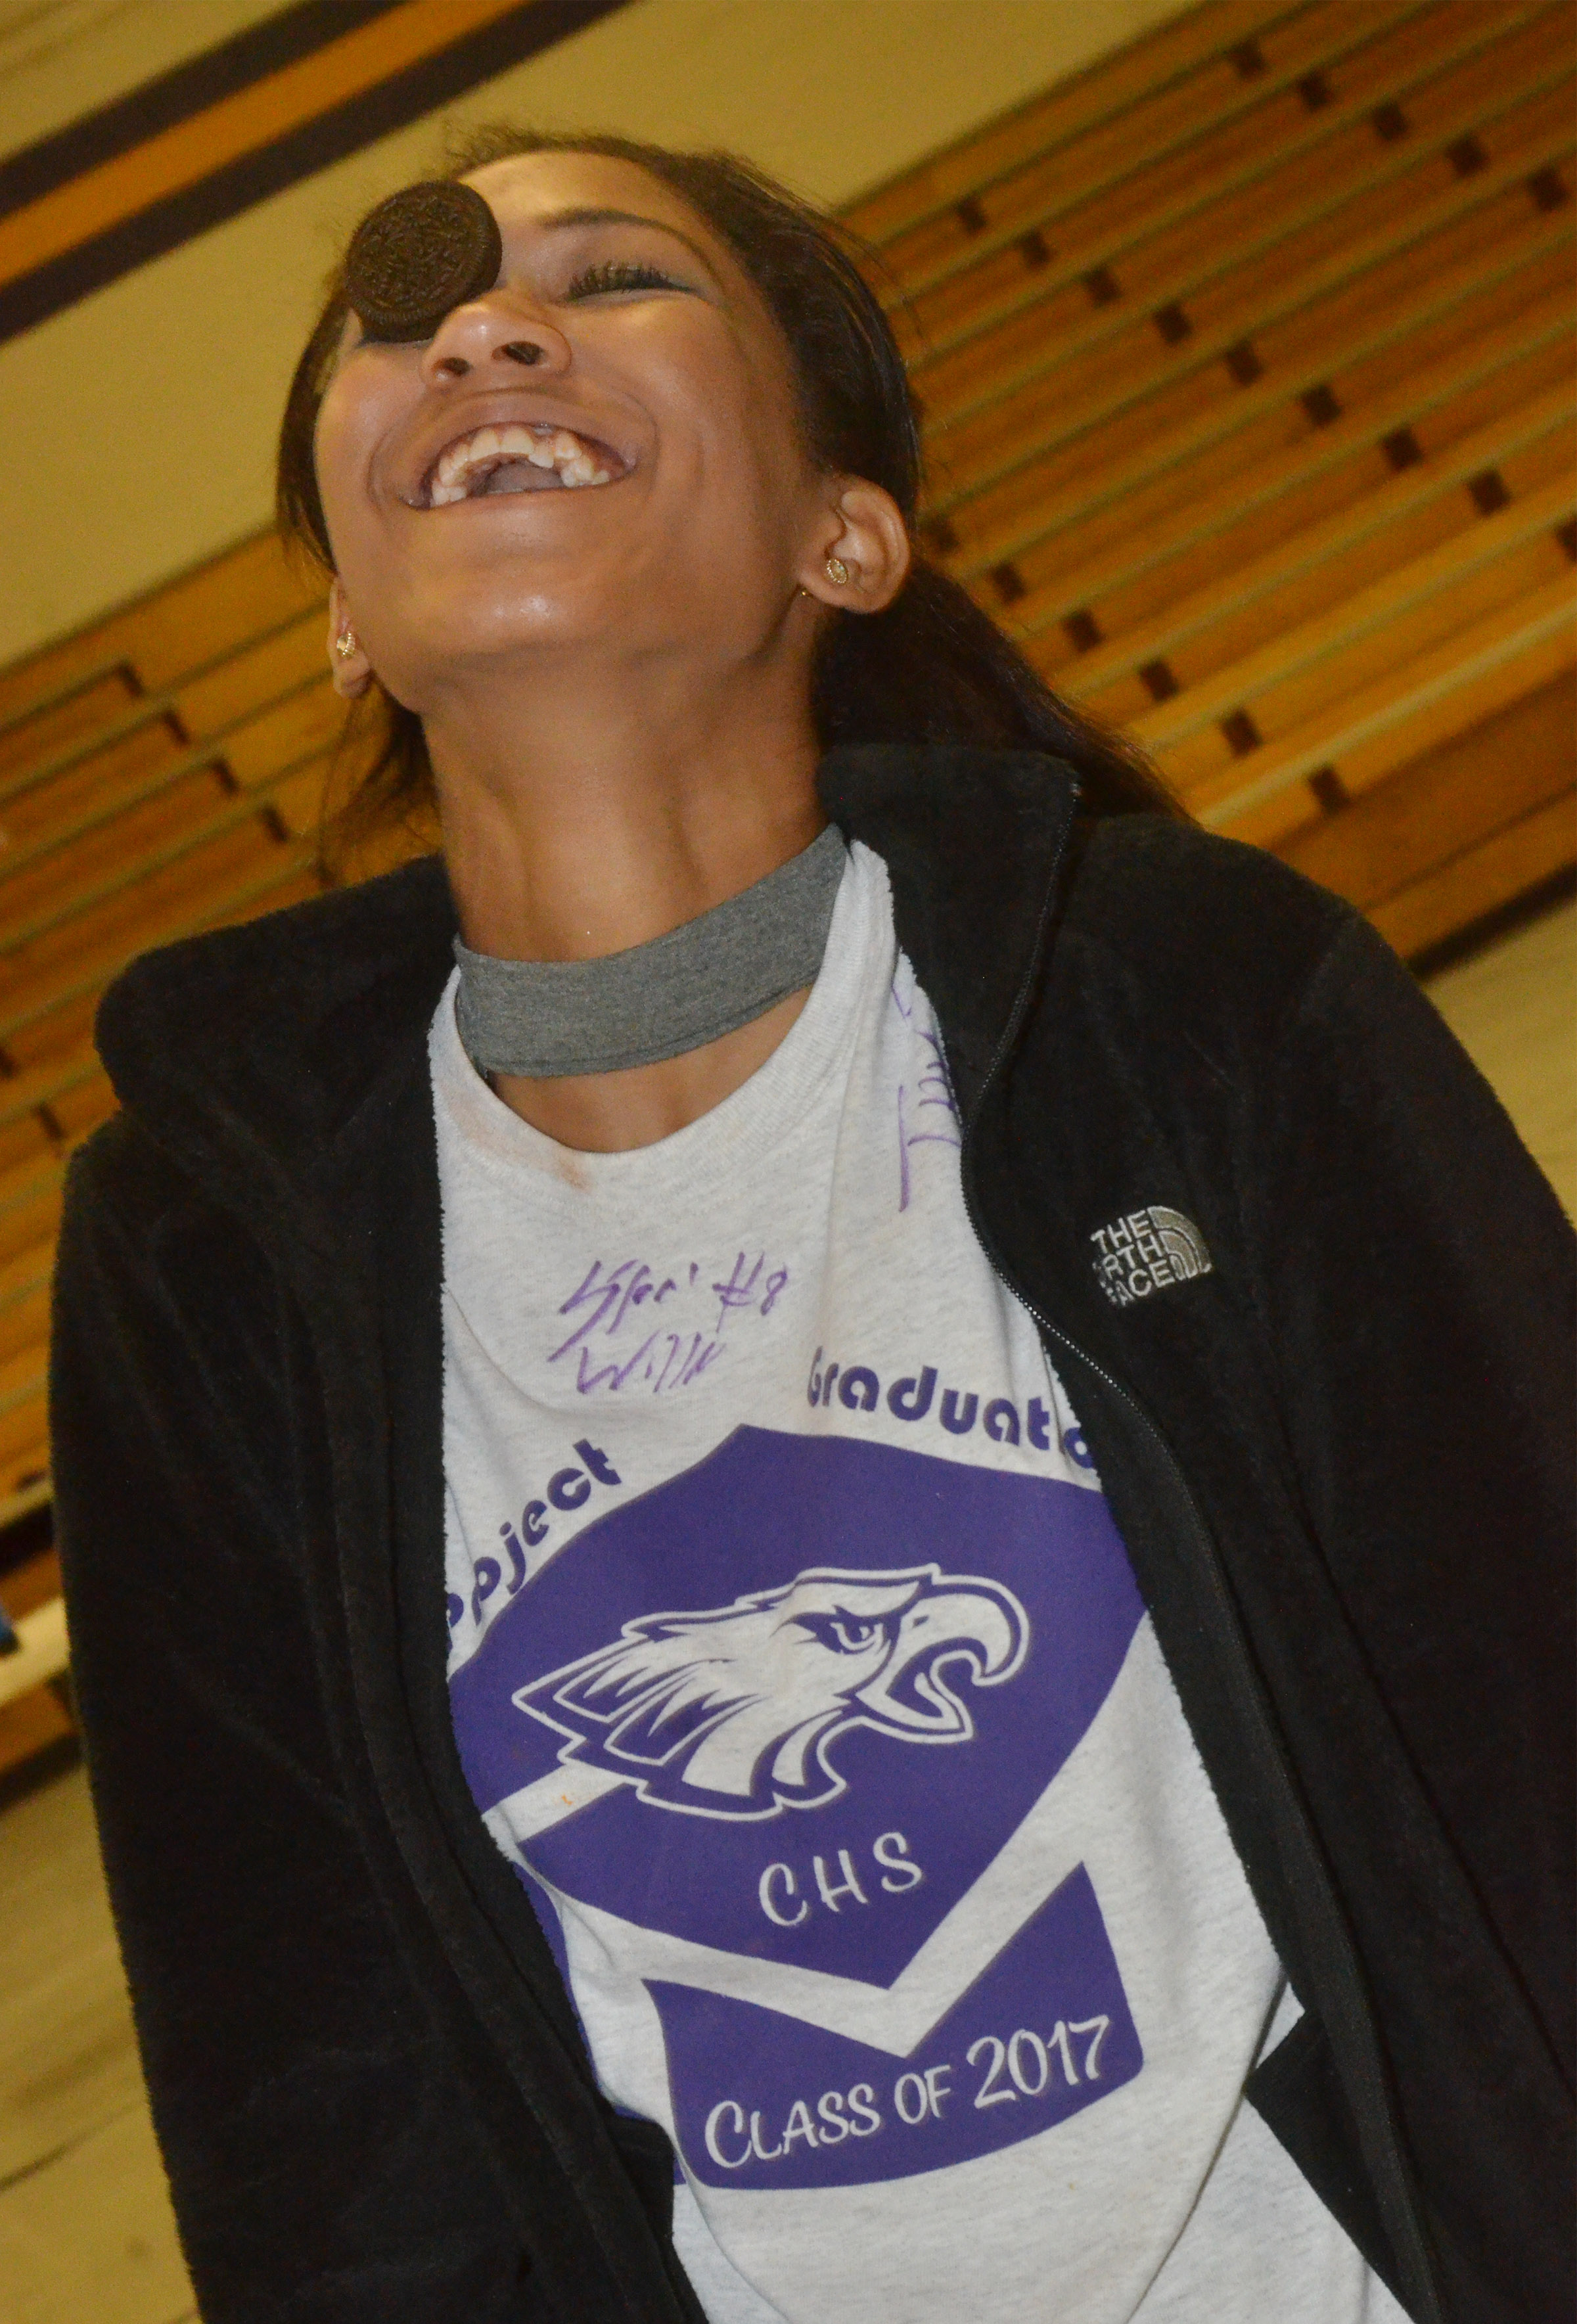 CHS senior Alexis Shears tries to get a cookie from her forehead into her mouth.